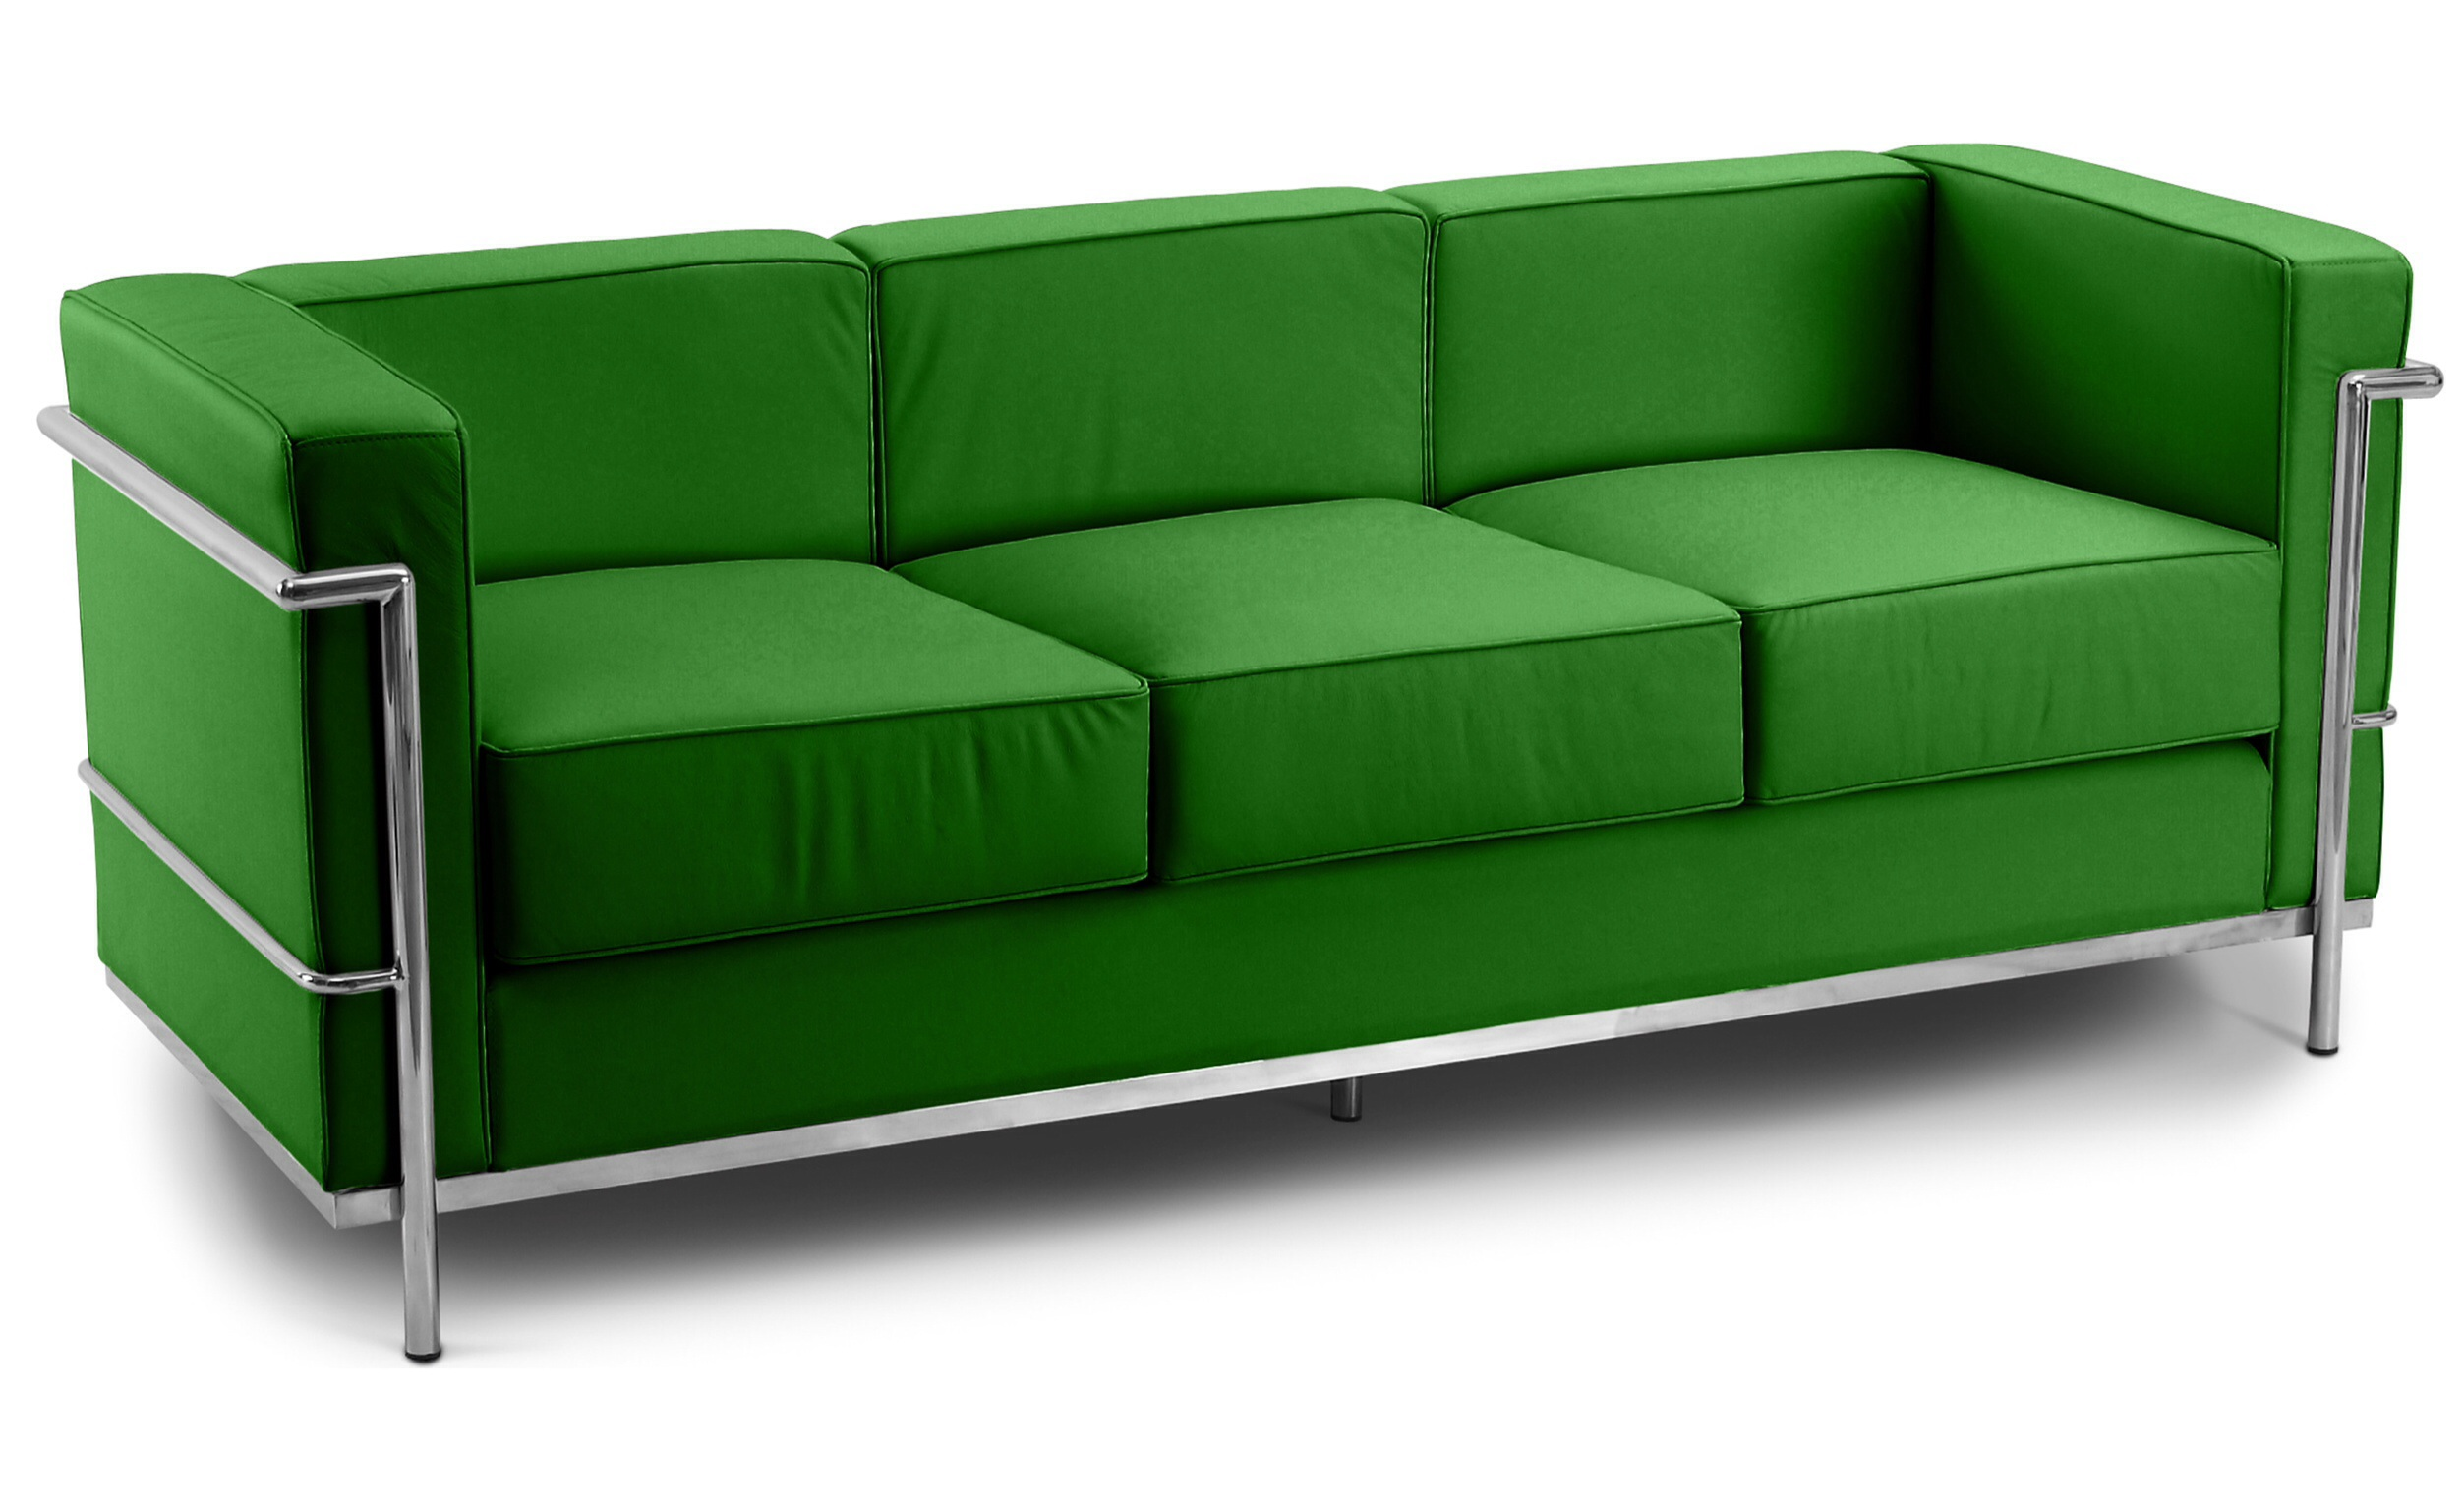 Corbusier 3 Seater Sofa Faux Leather Green 1960 Wide Specialist Furniture Contracts